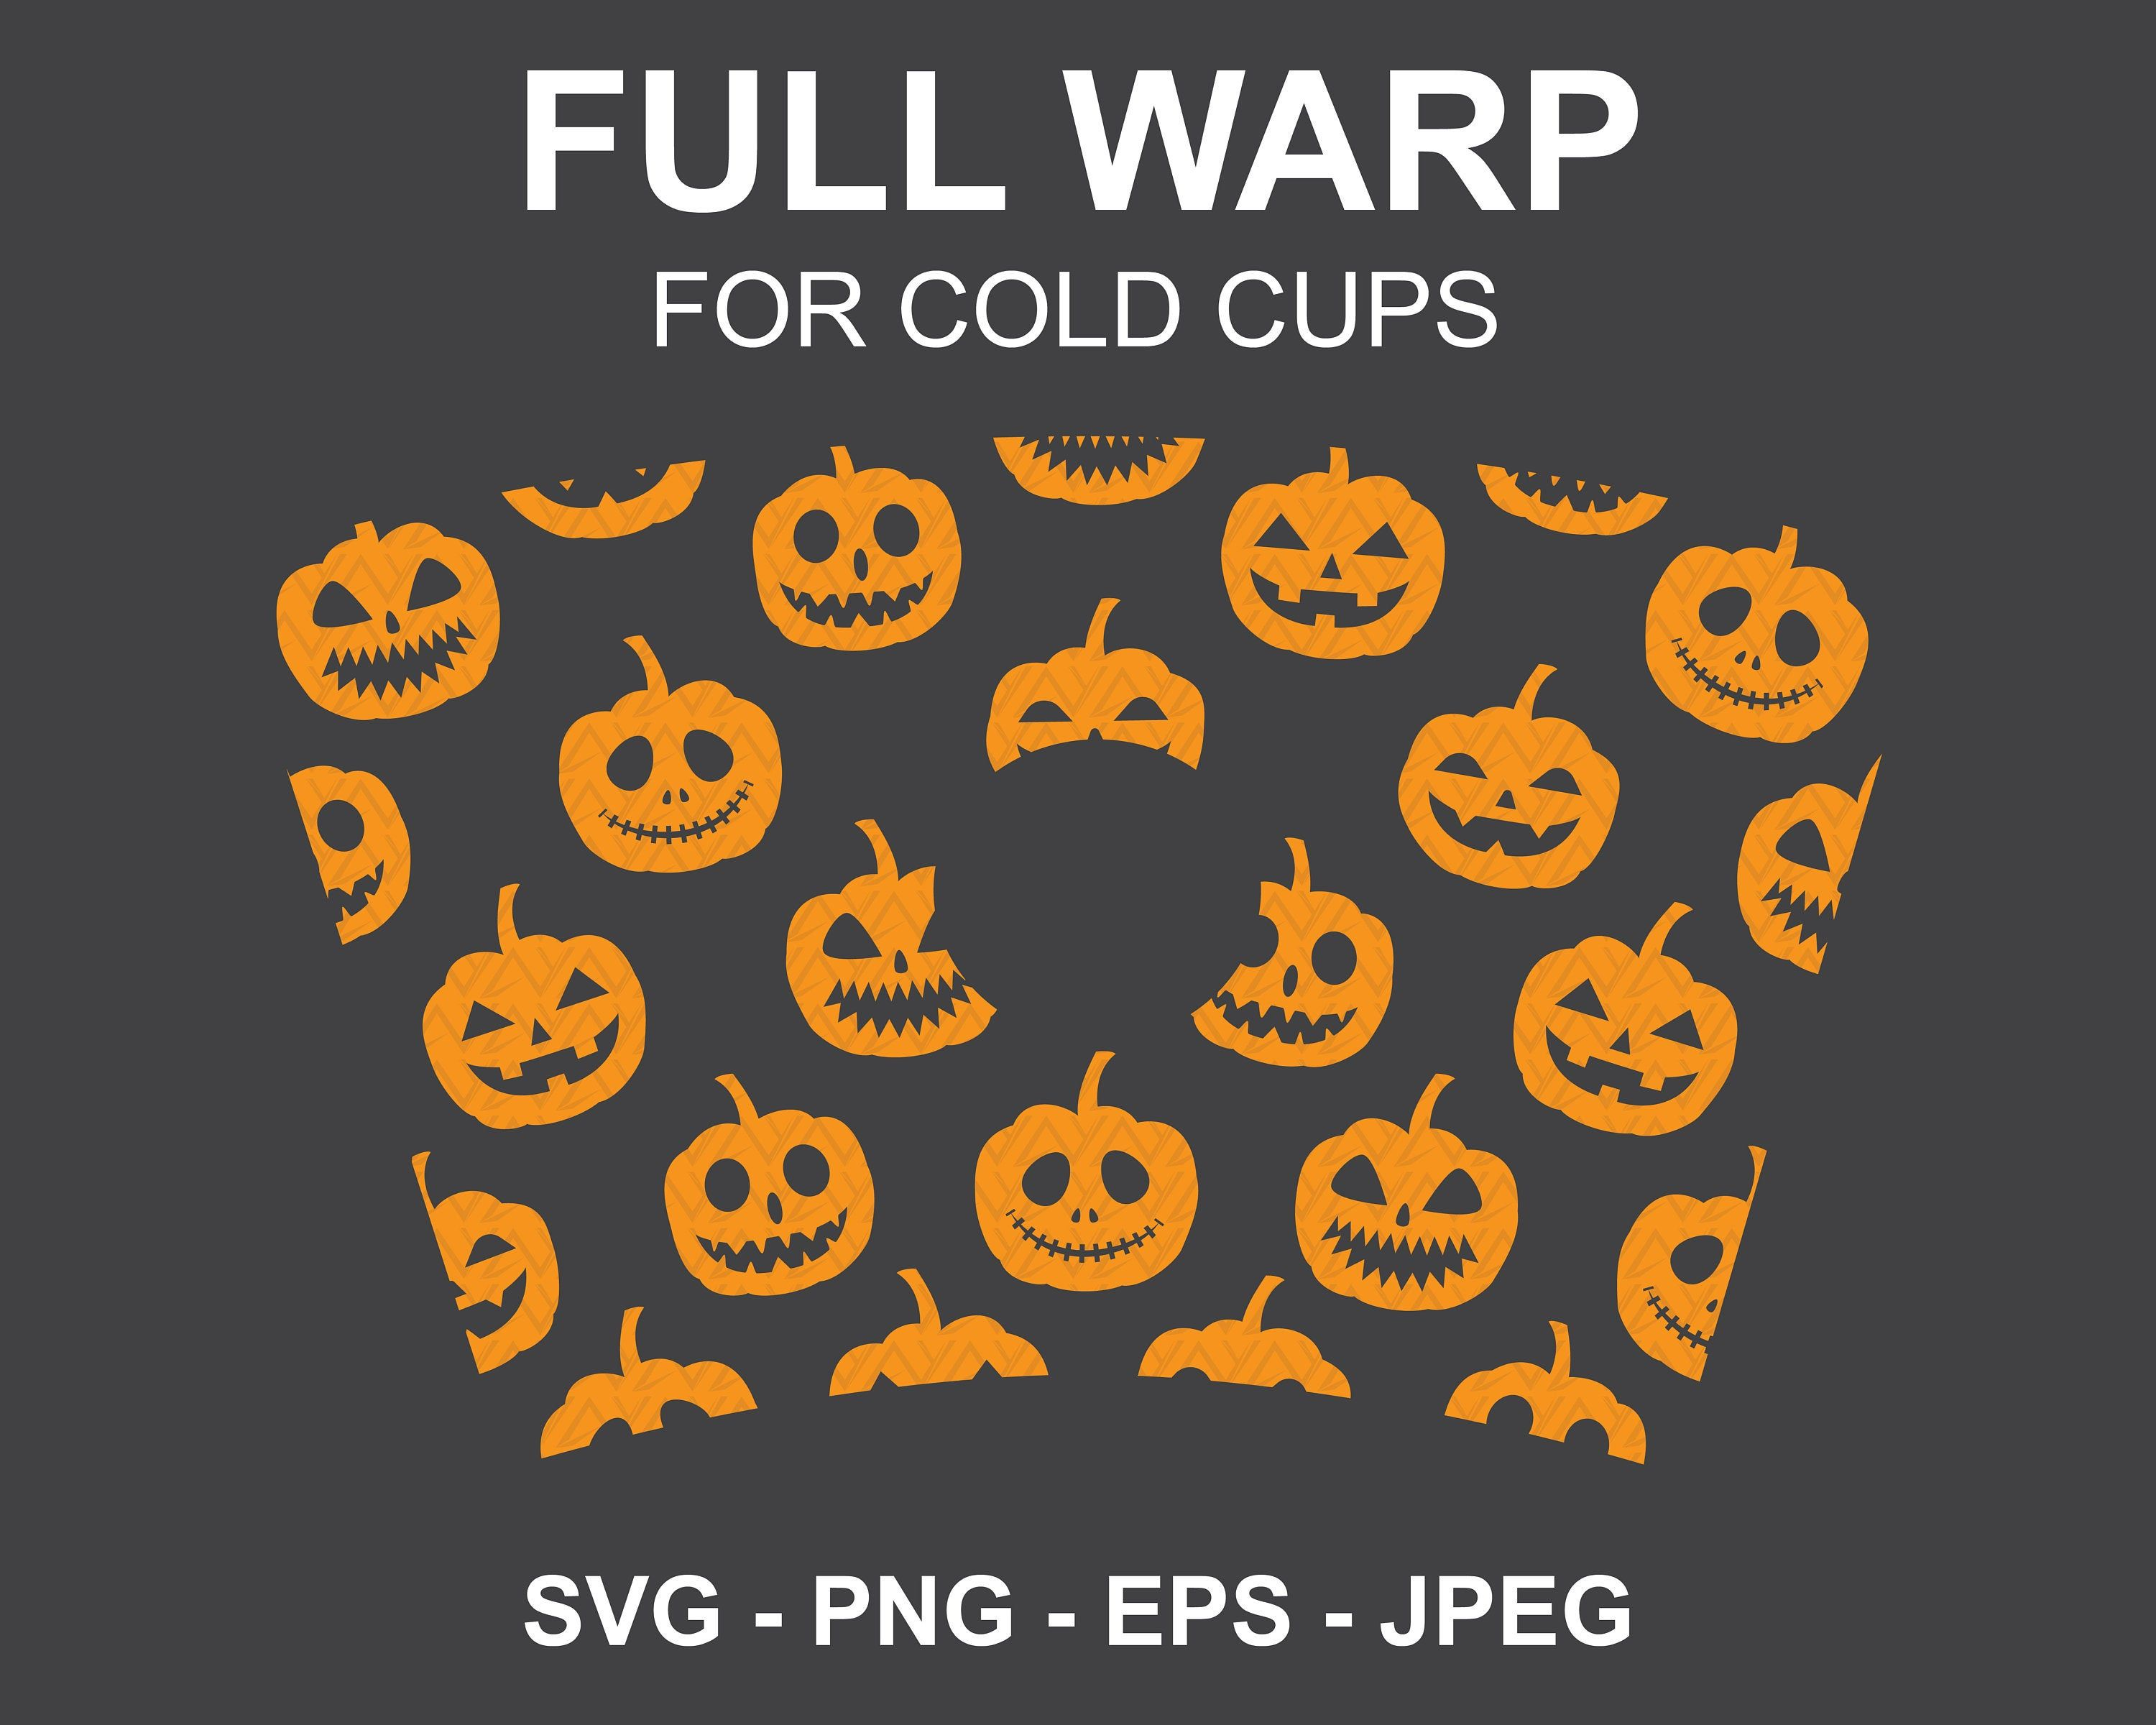 Halloween Pumpkin Starbucks cup SVG,Pumpkin Halloween Full